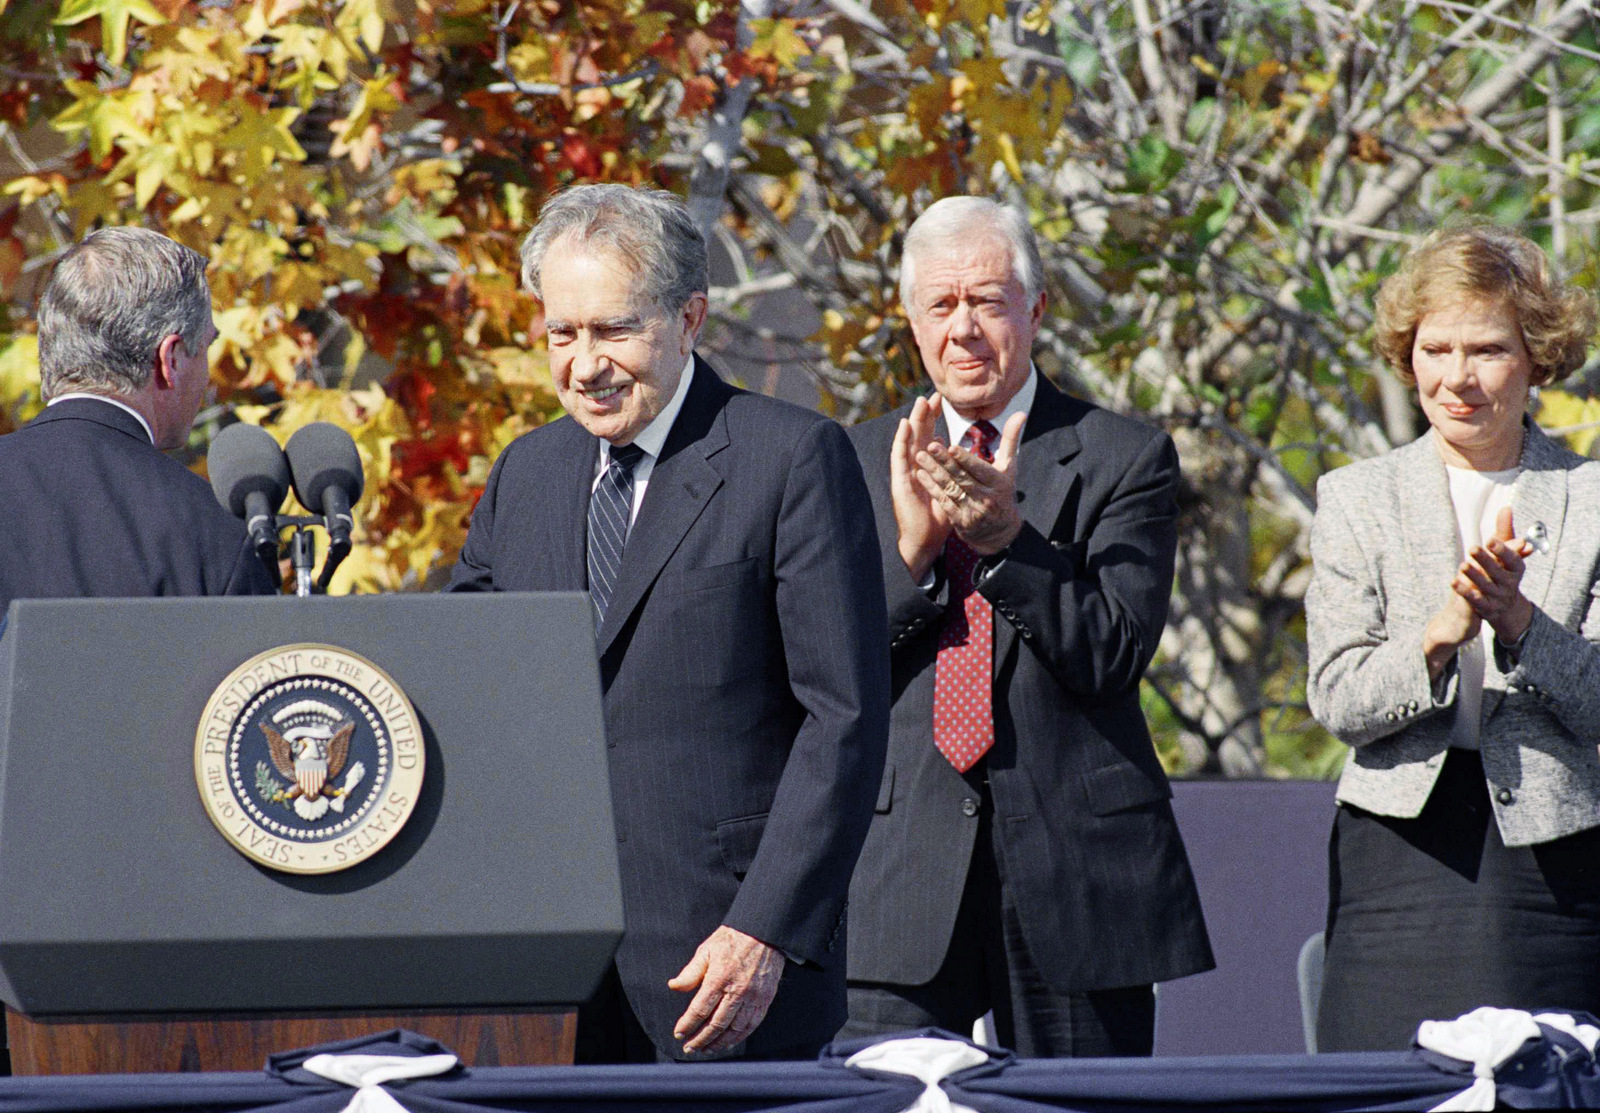 Former President Jimmy Carter applauds former President Richard M. Nixon as he is introduced at the dedication ceremony for the Ronald Reagan Presidential Library in Simi Valley, California Monday, Nov. 4, 1991. The gathering was the first ever by five U.S. Presidents. (AP/Craig Fujii)